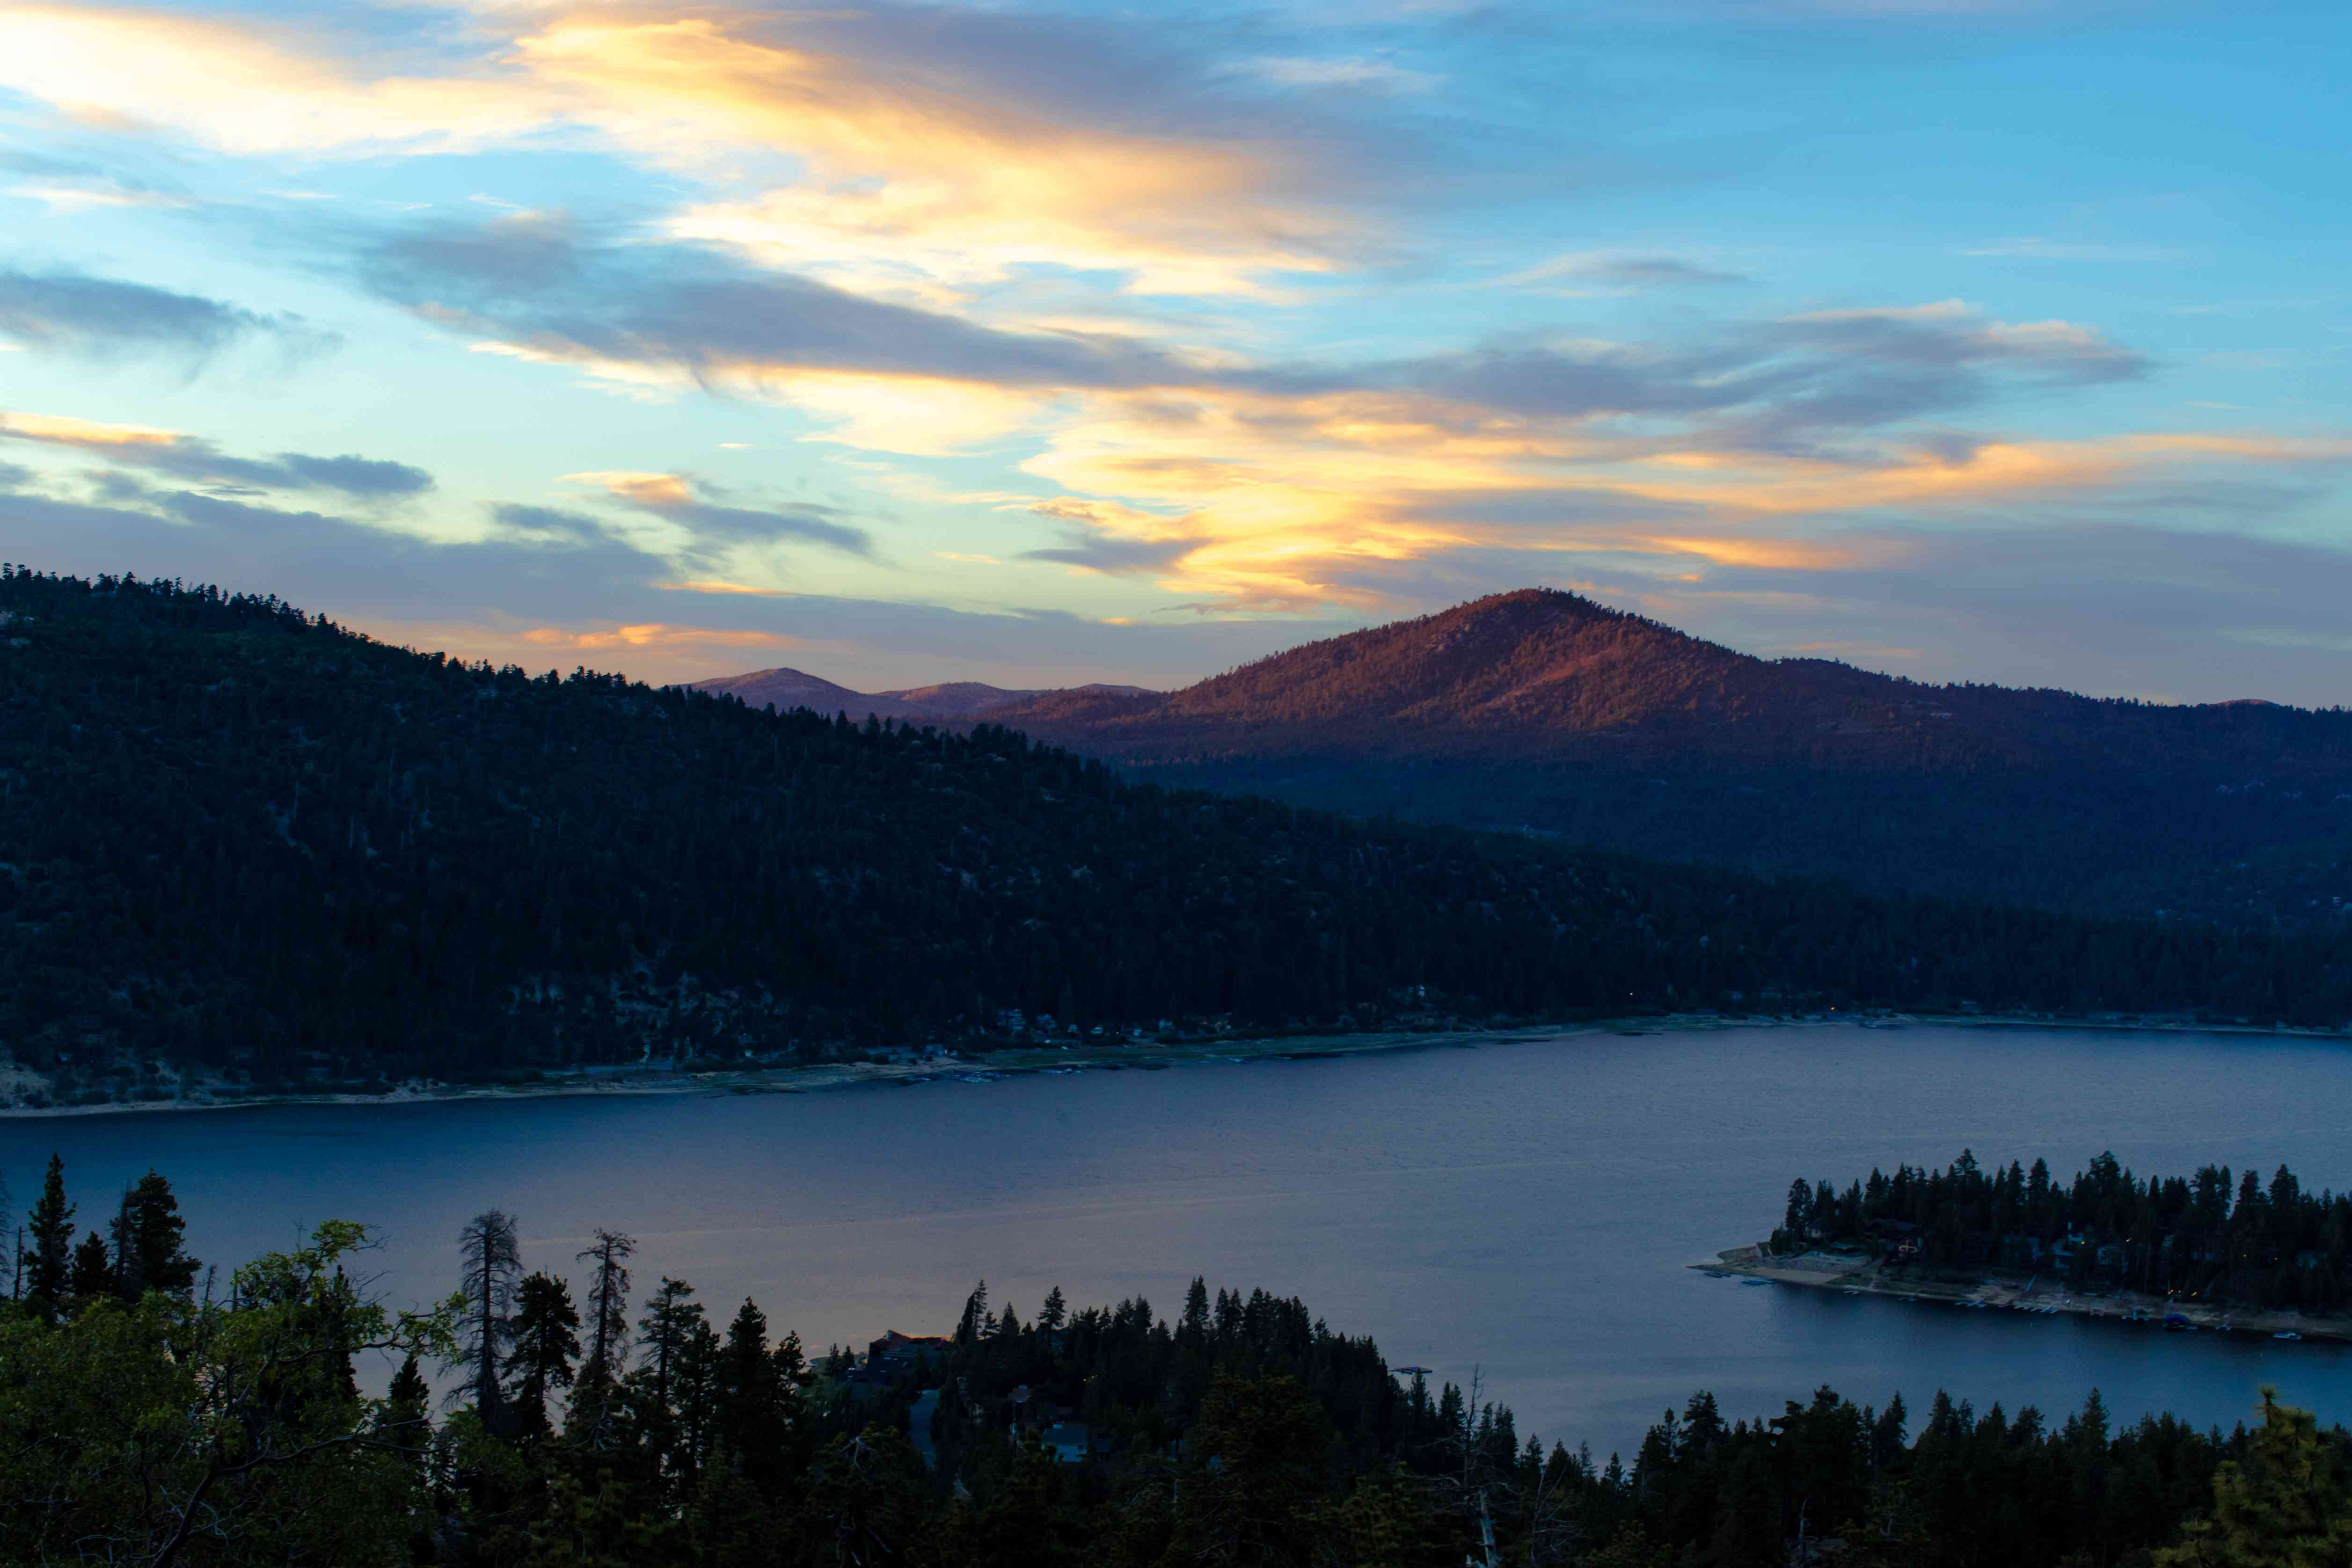 lake and mountains in Big Bear at sunset